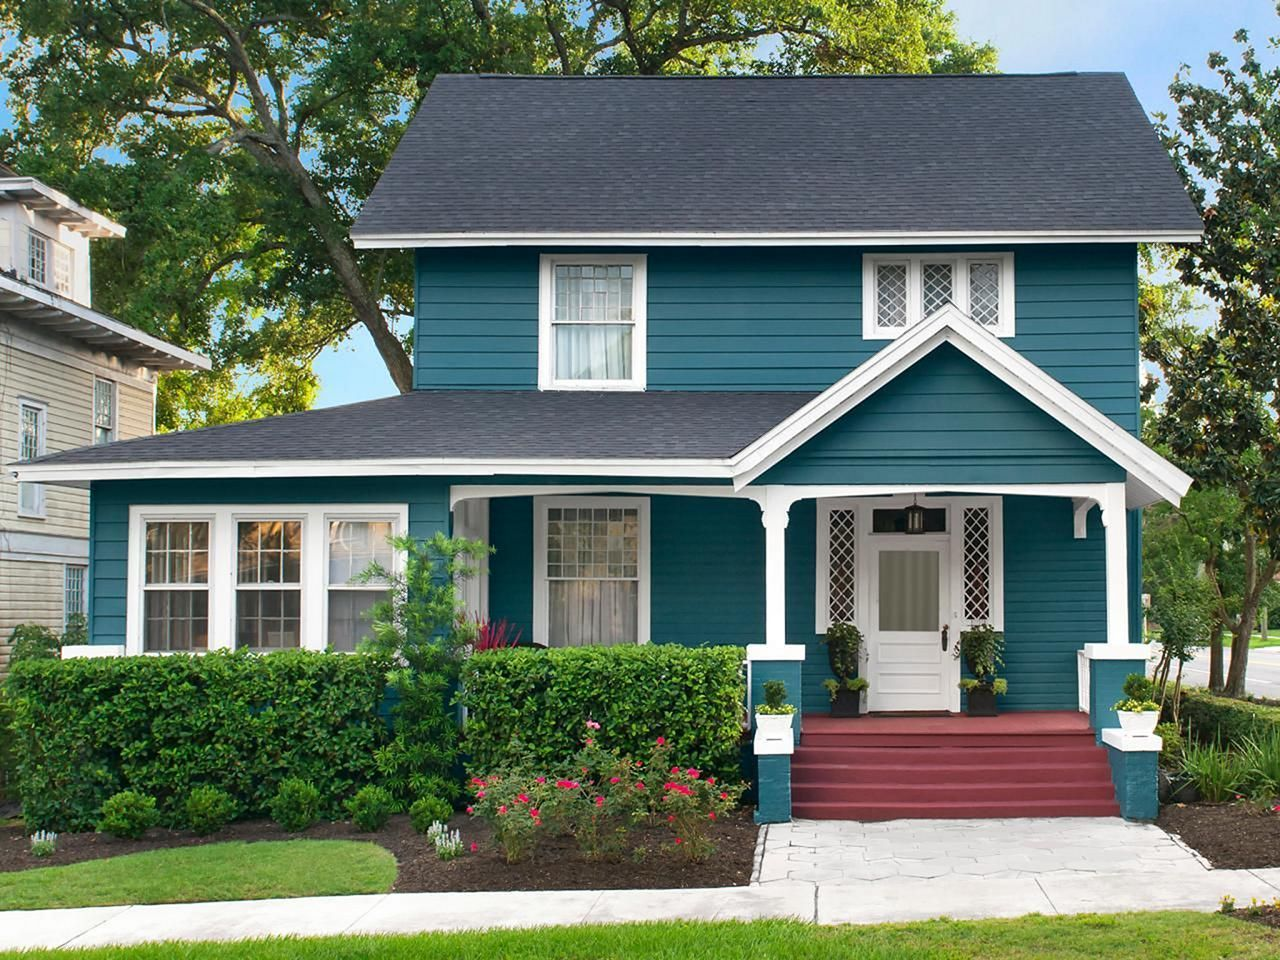 awesome 9 top home exterior color palette trend 2020 the on exterior home paint ideas pictures id=99679